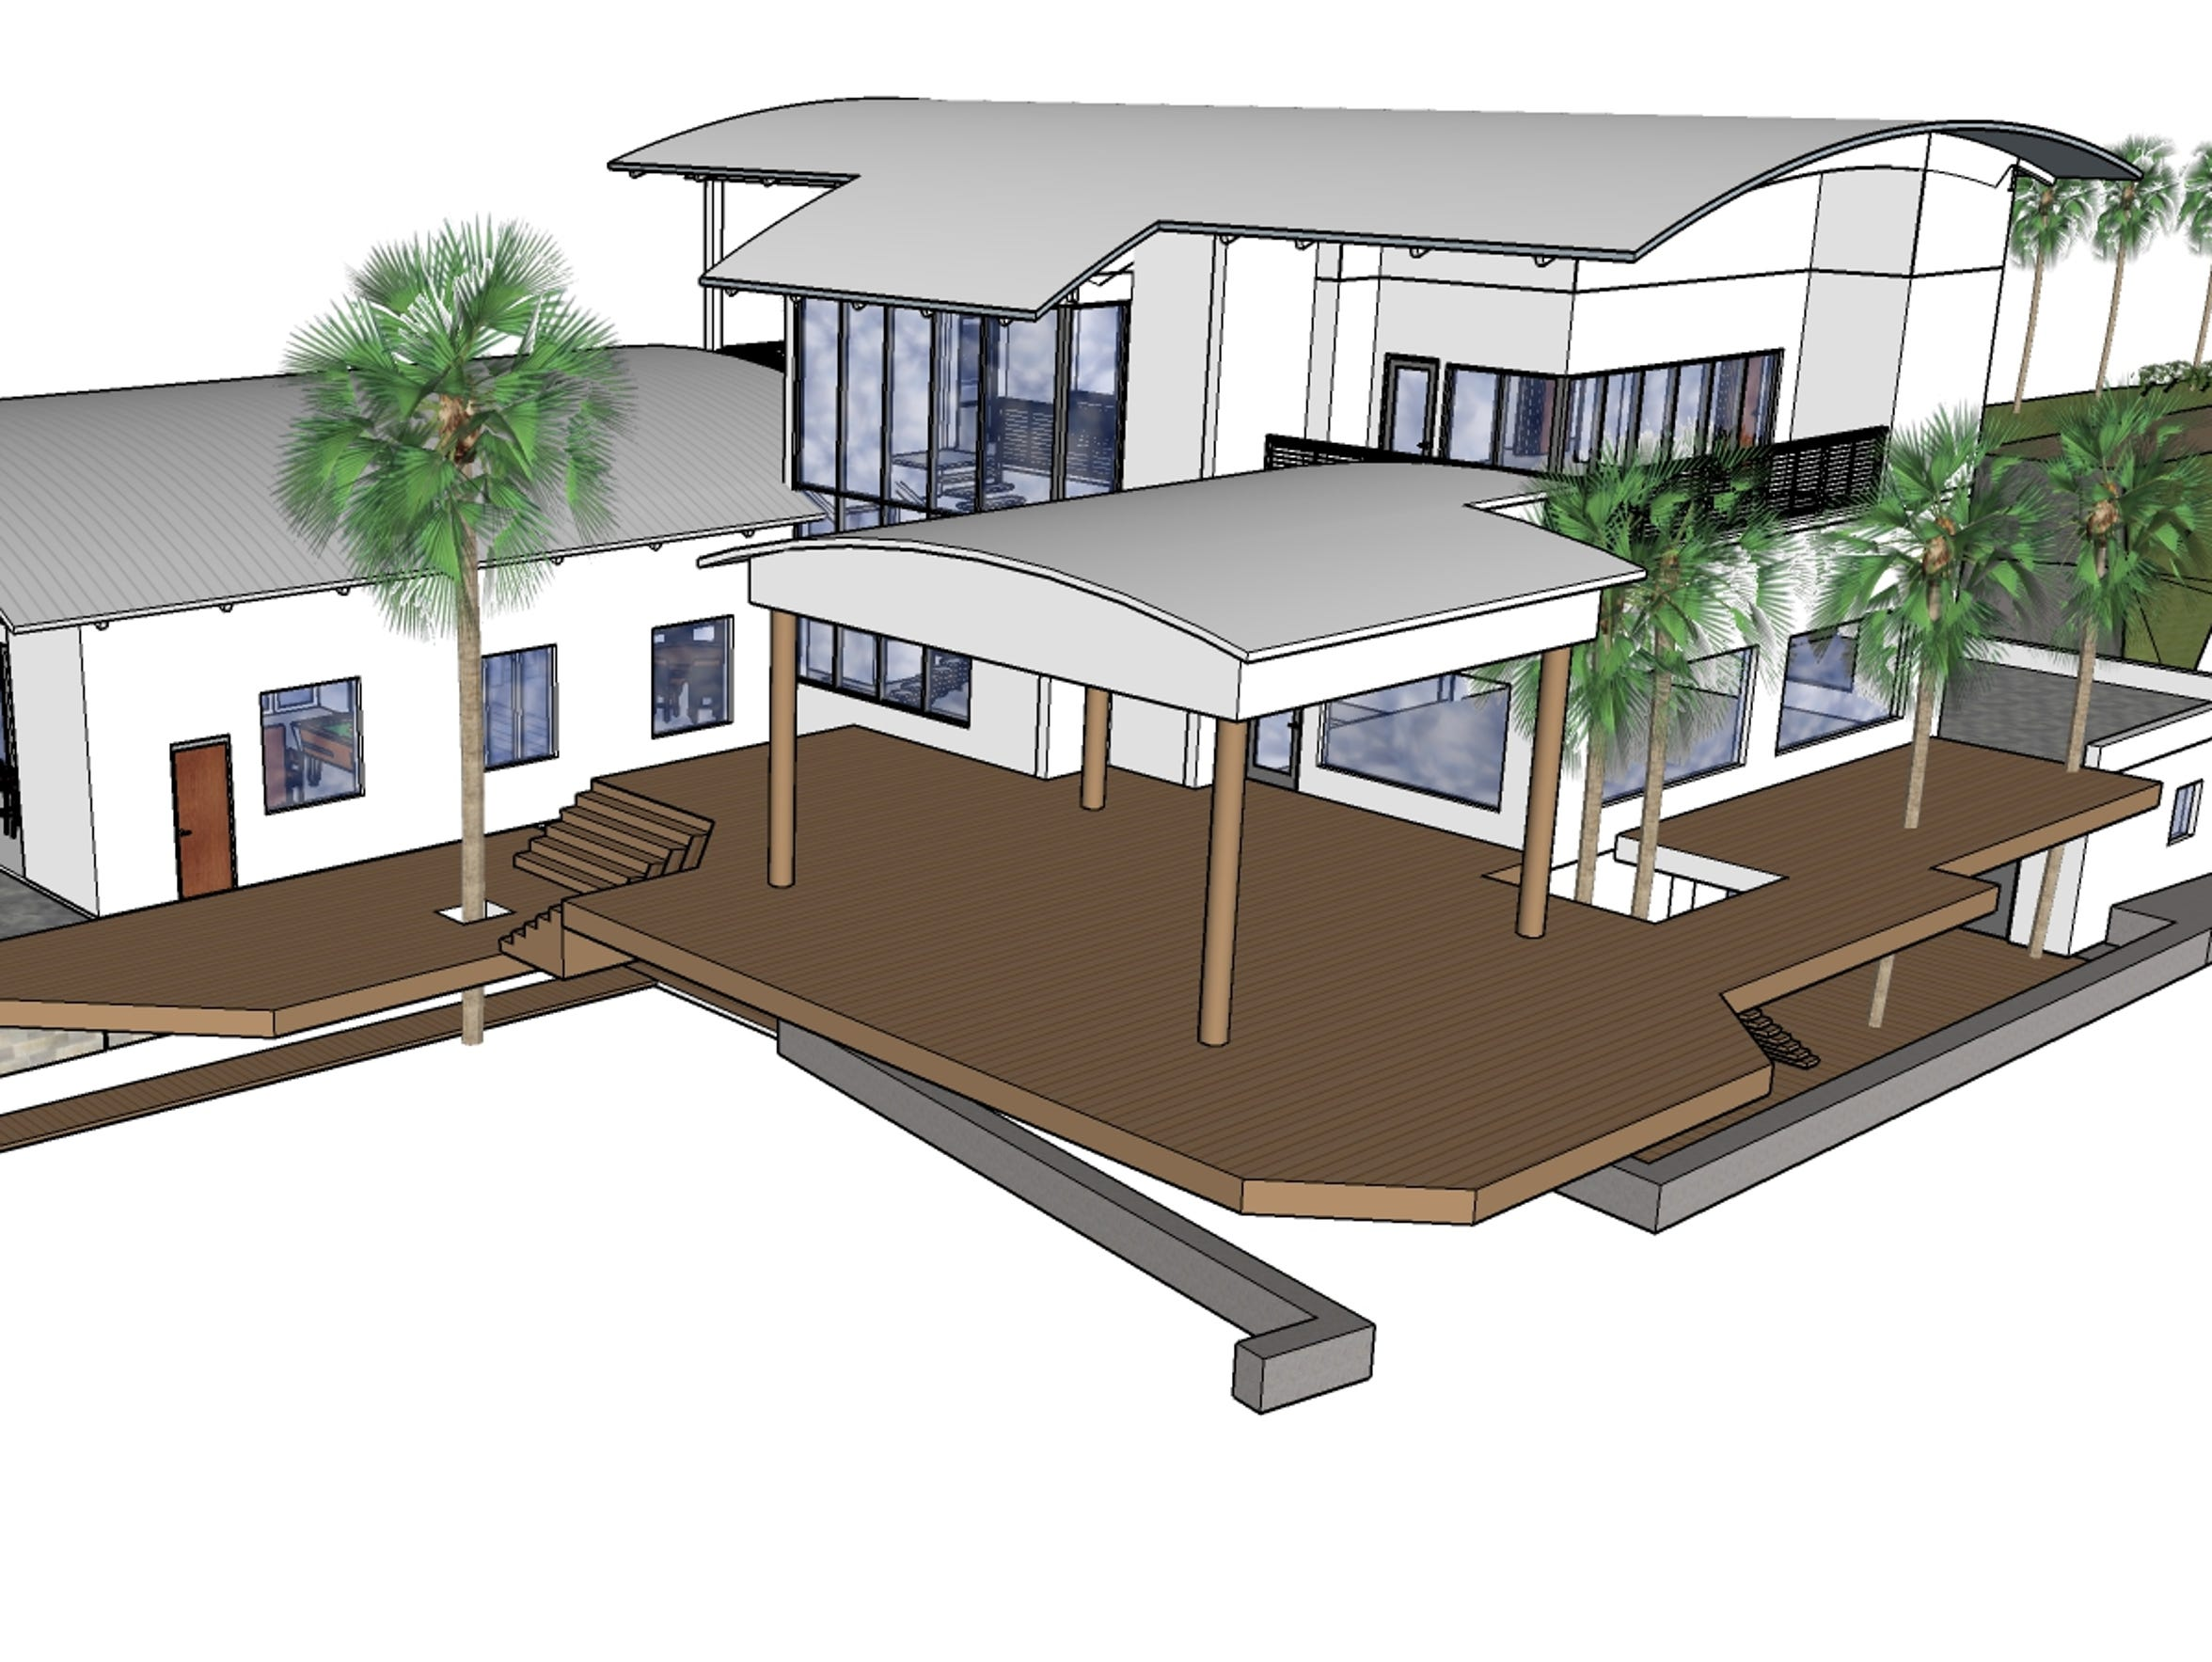 A rendering of what the new, modern home will look